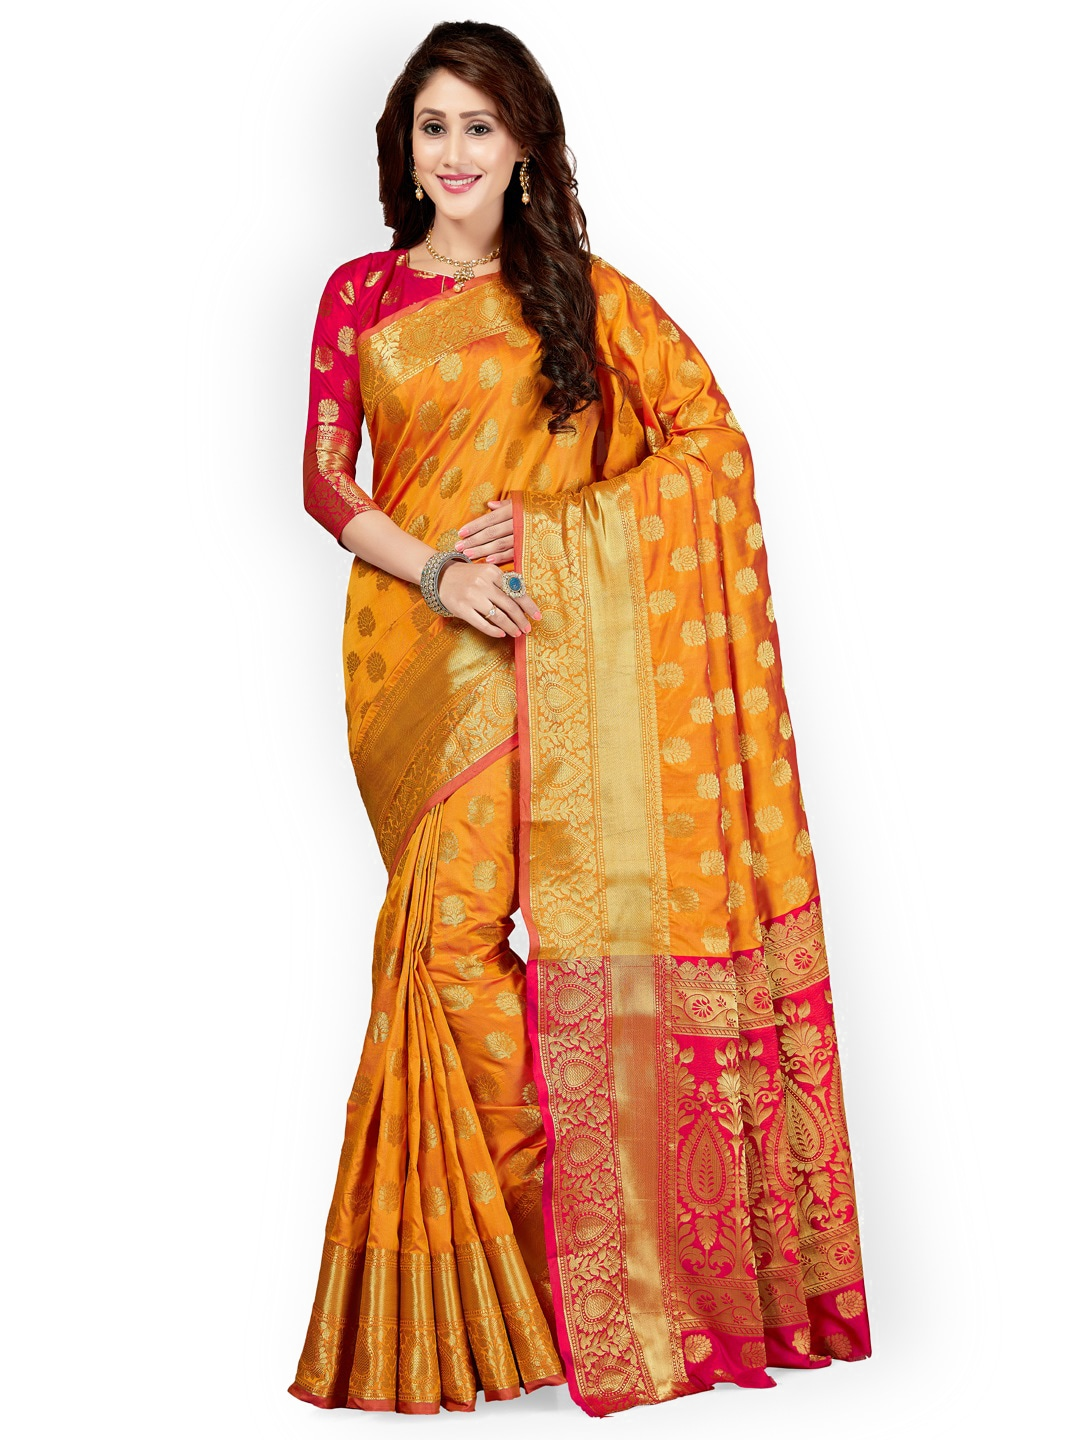 6bc7eb71384af Saree - Buy Sarees Online at Best Price in India